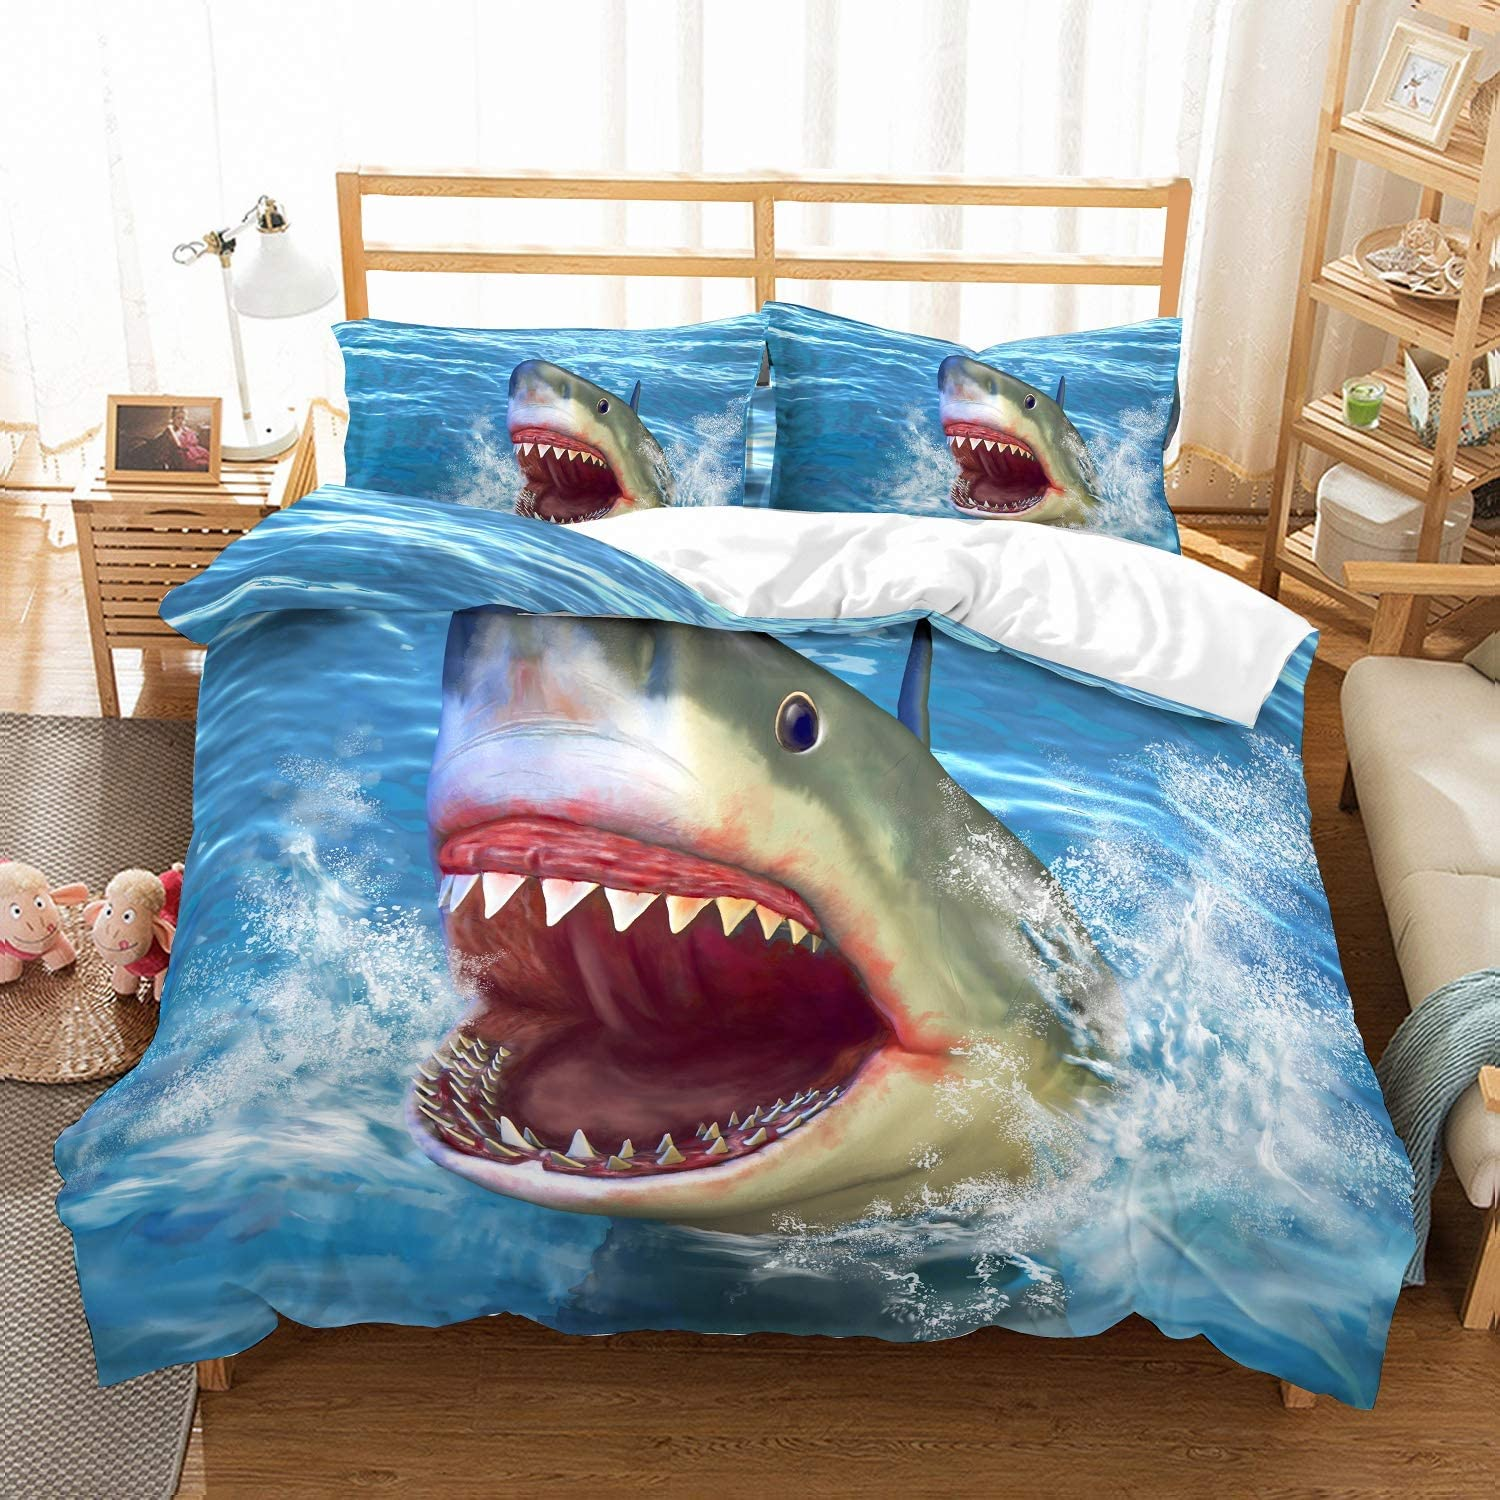 MOUMOUHOME Shark Bedding Double Kids 3D Shark Jumping from Ocean Big Open  Mouth Printed Blue Duvet Cover Set for Boys,Girls and Teens,3 Pieces with 2  Pillow Sham,No Comforter : Amazon.co.uk: Home &